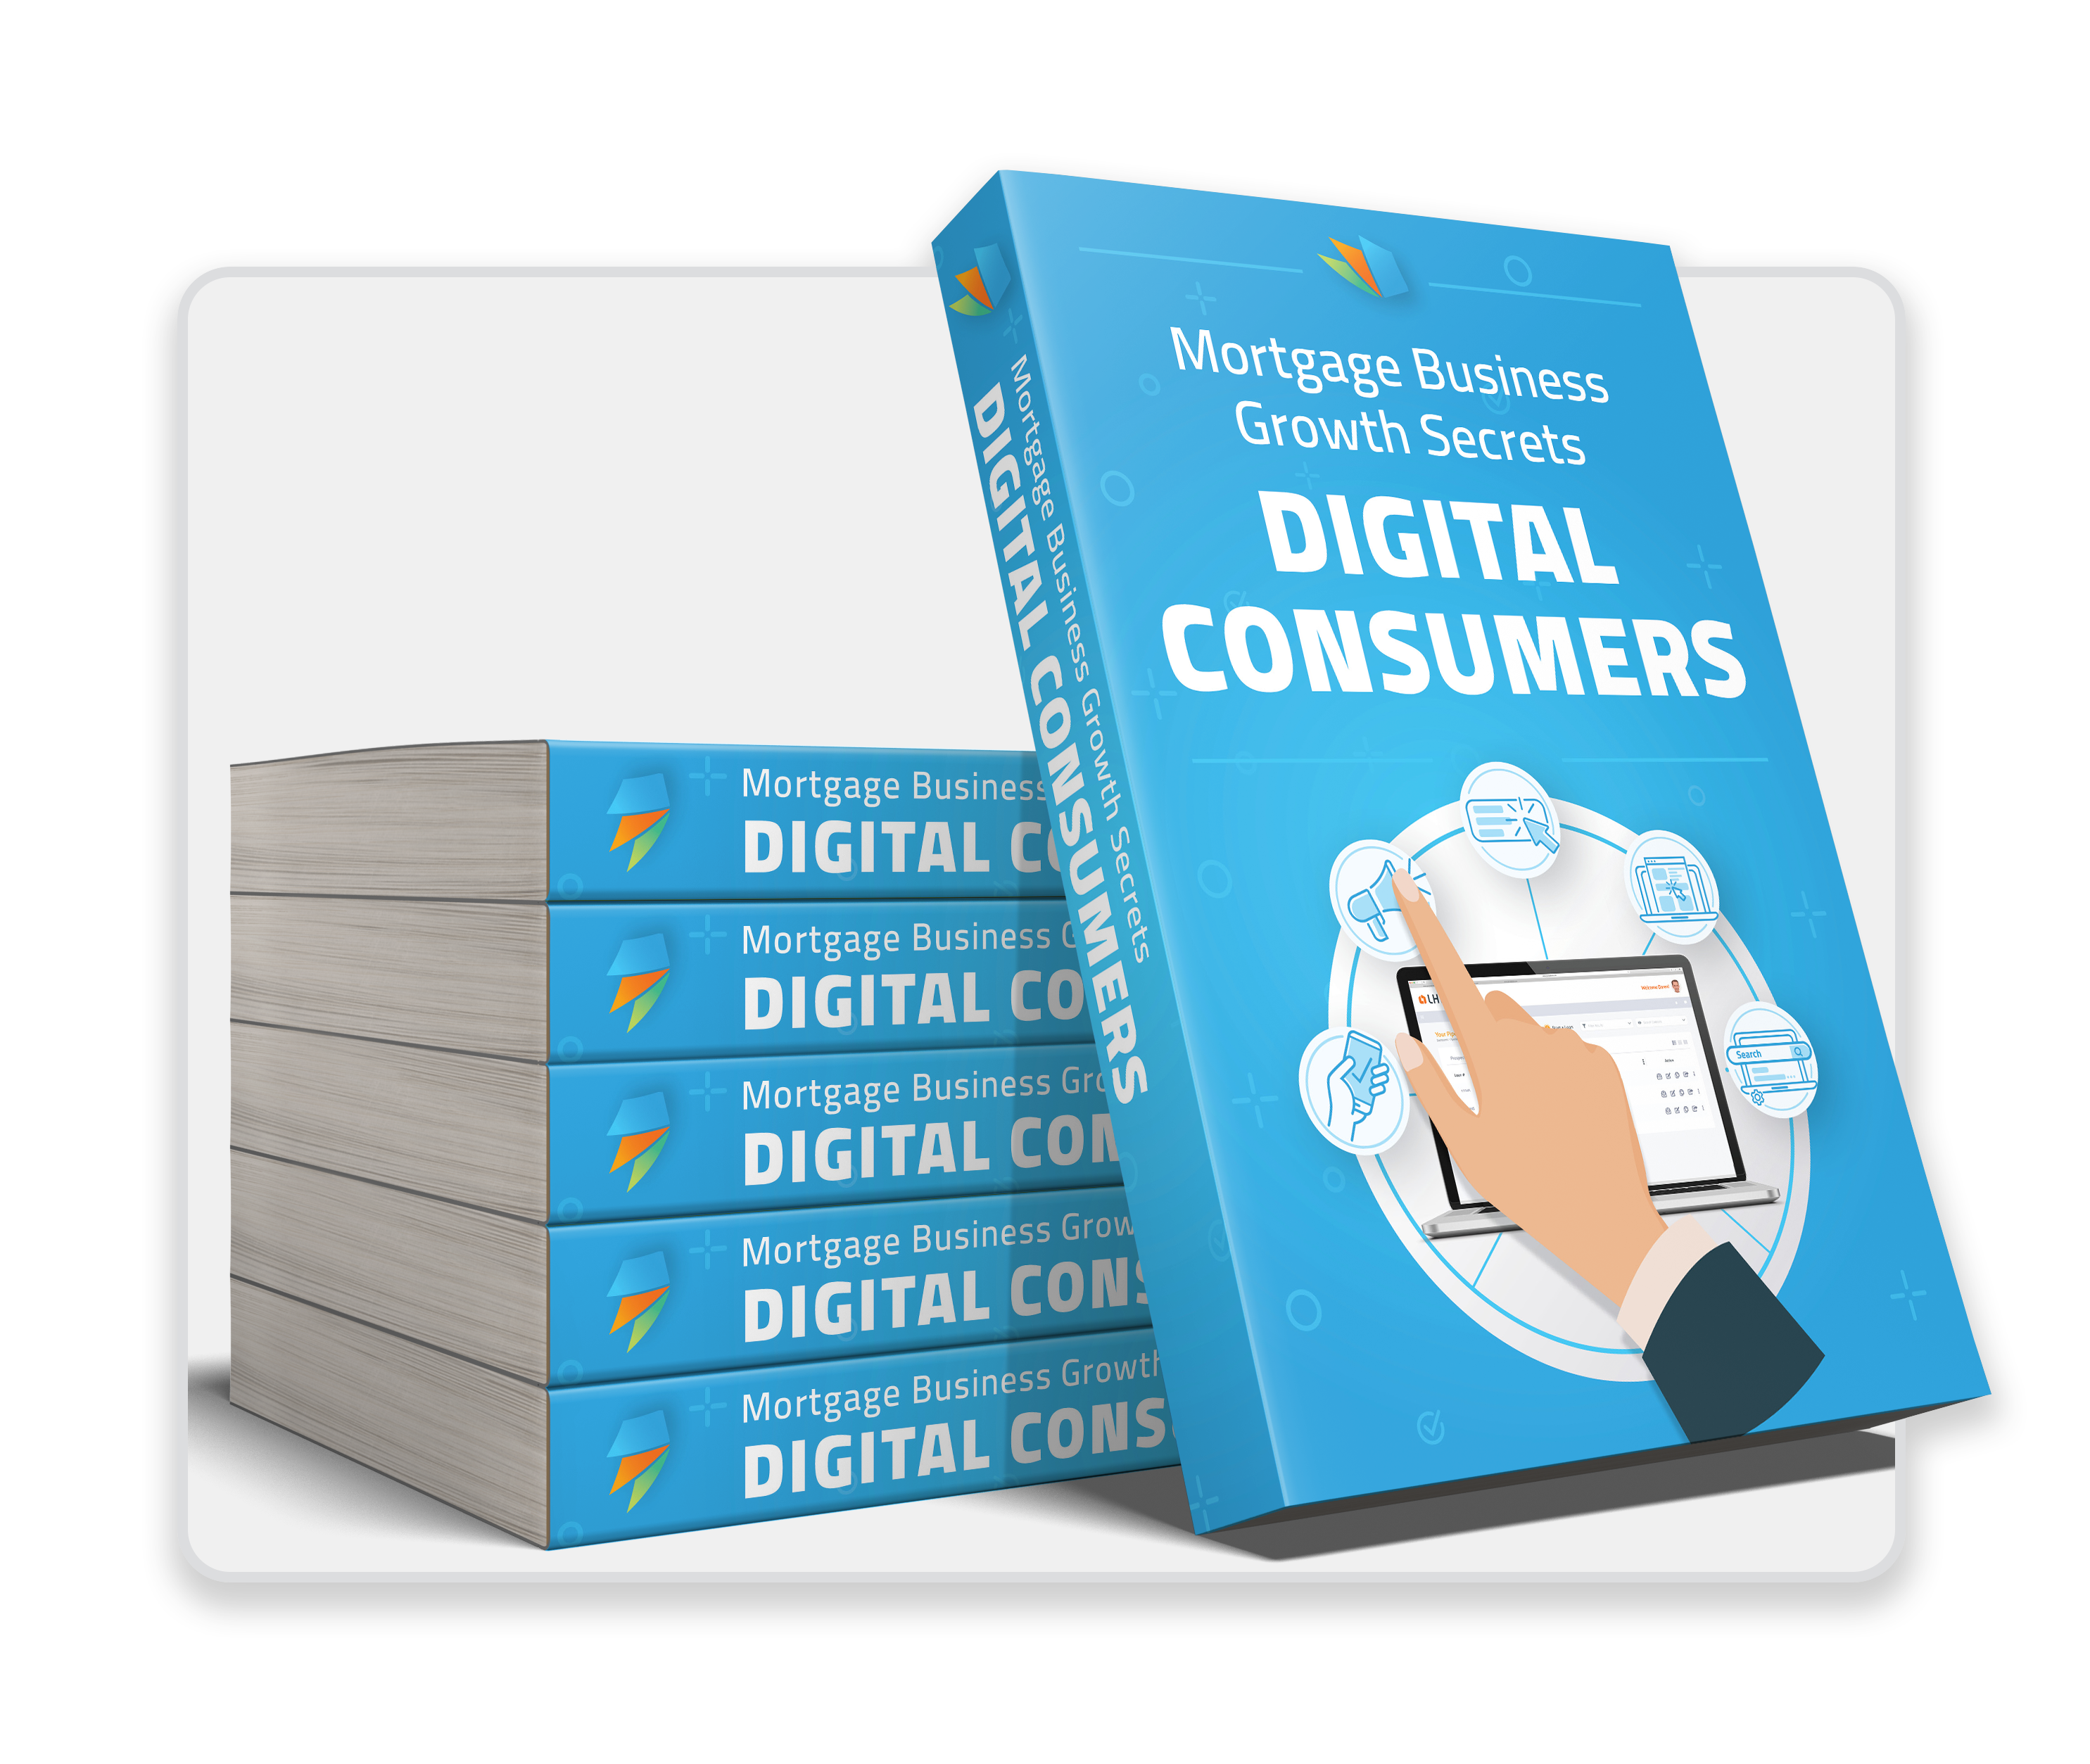 Mortgage Business Technology